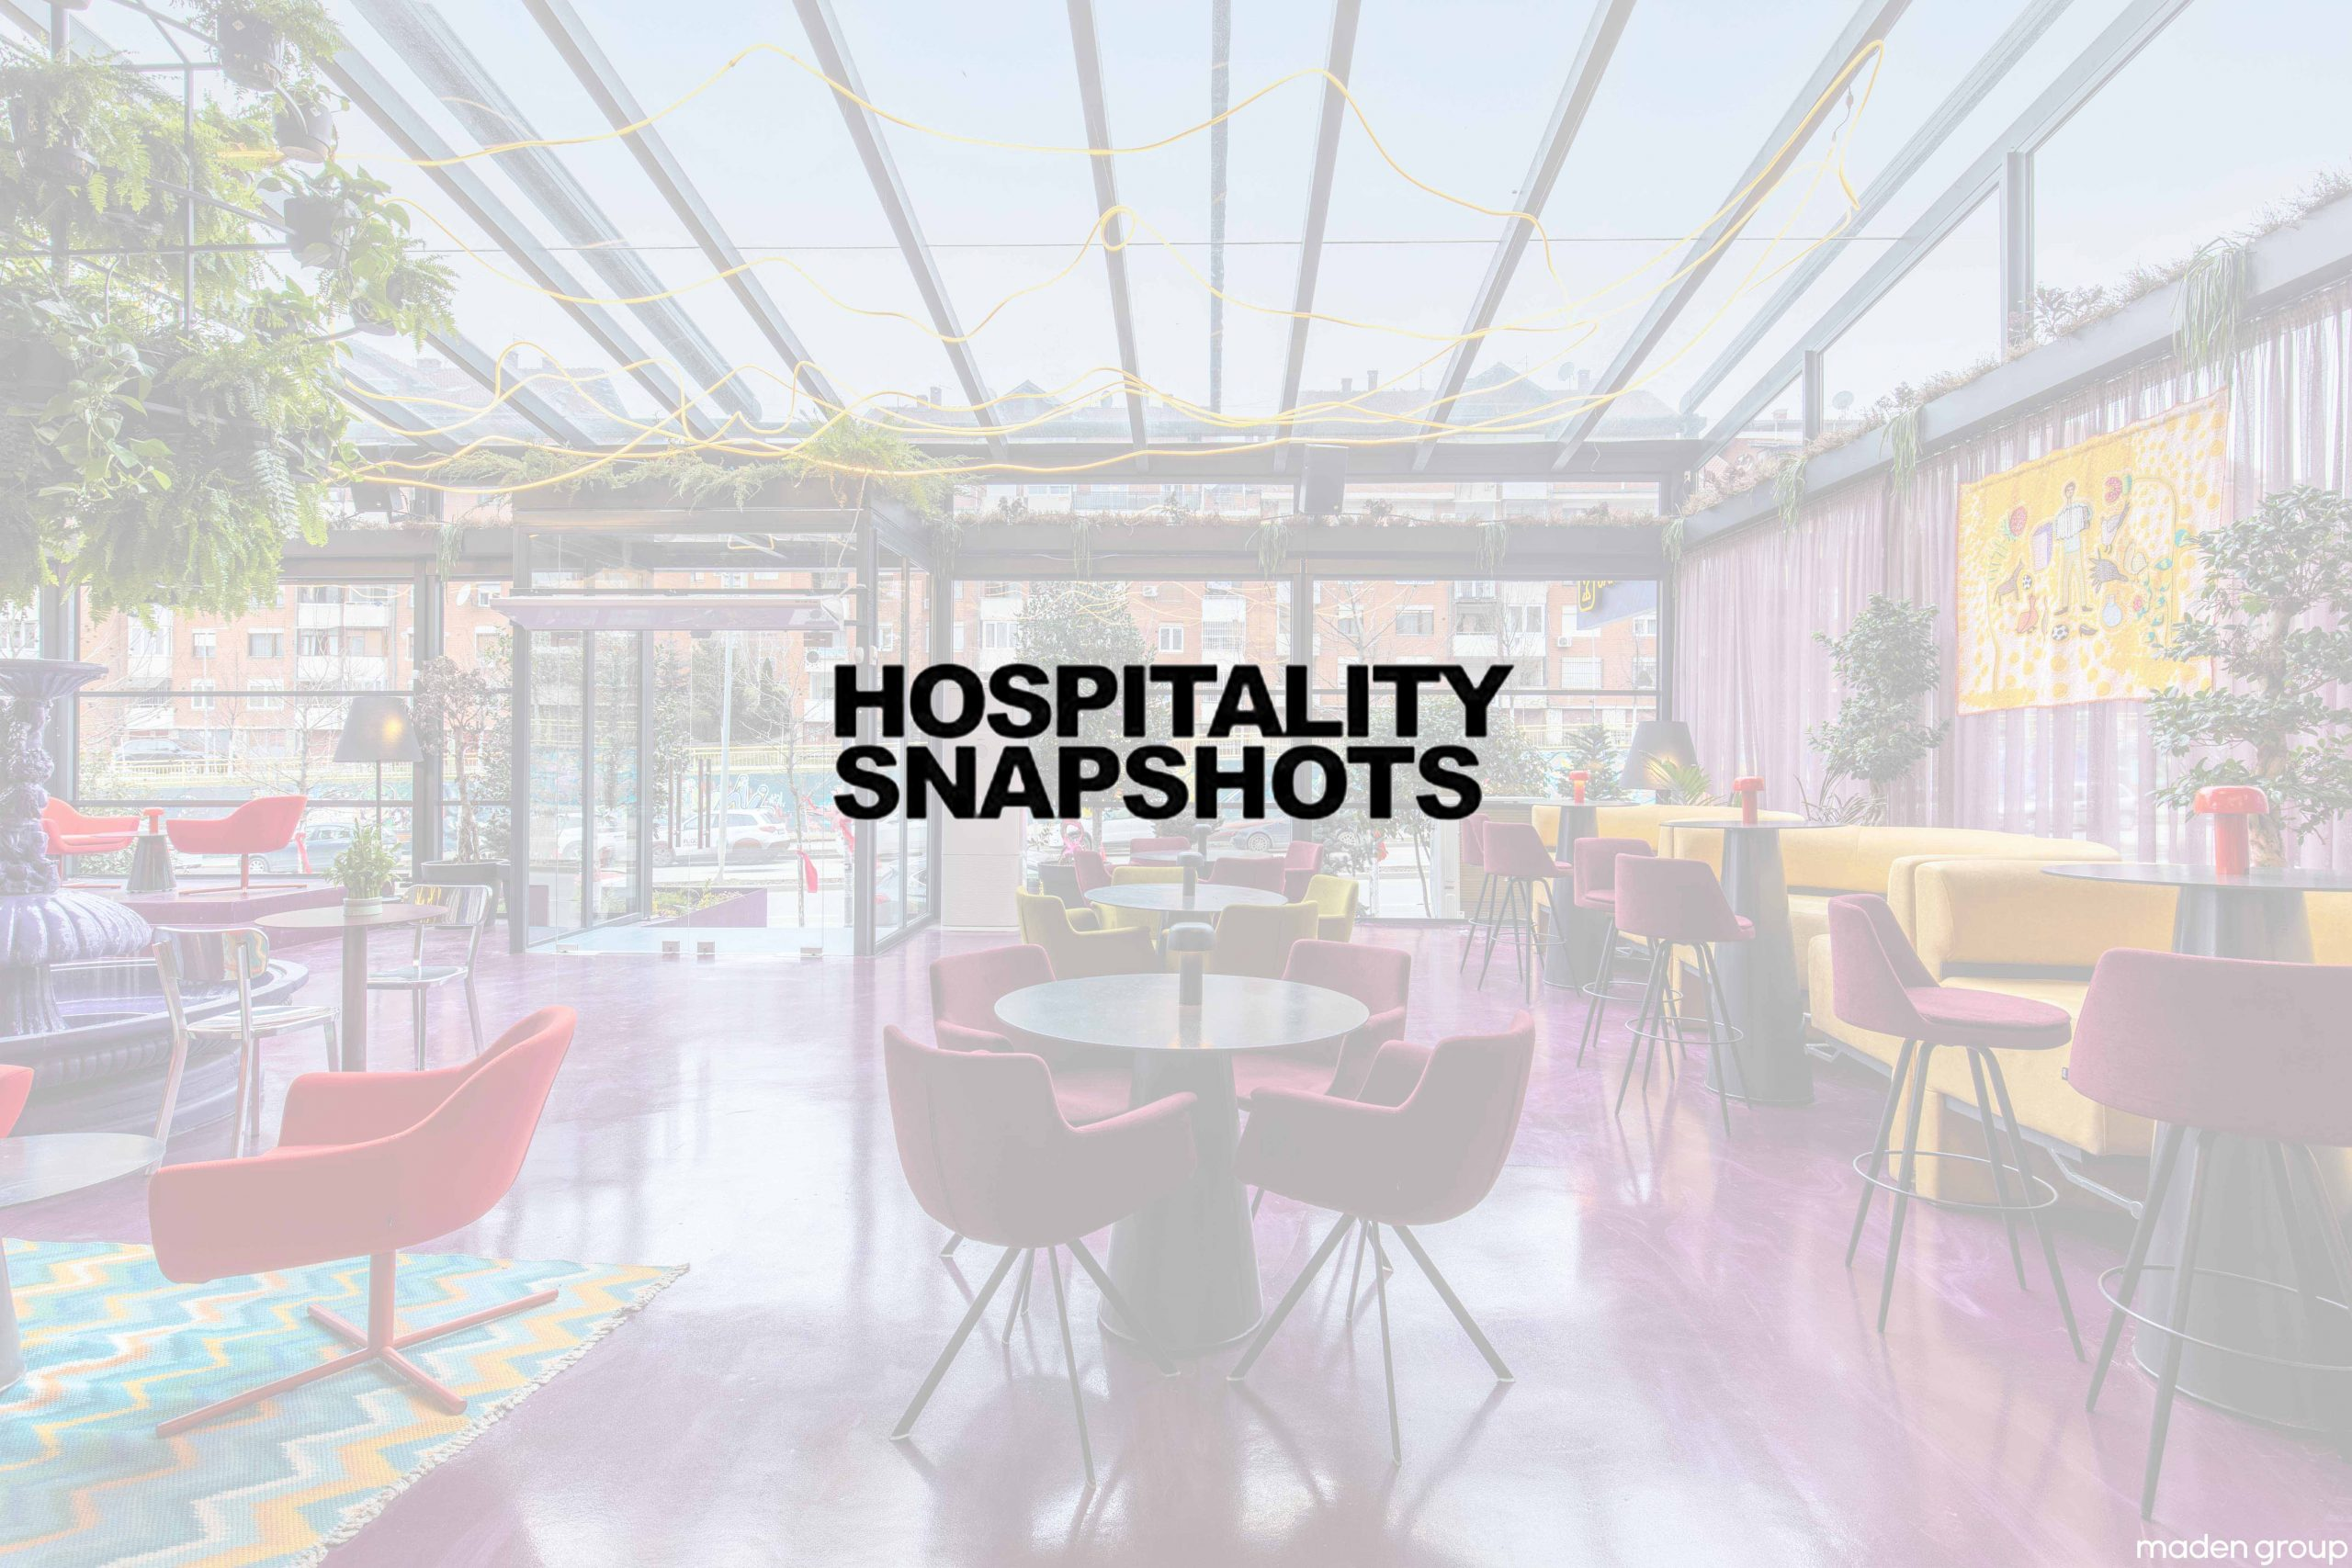 TRIANGLO Lounge Bar has been featured on Hospitality Snapshots